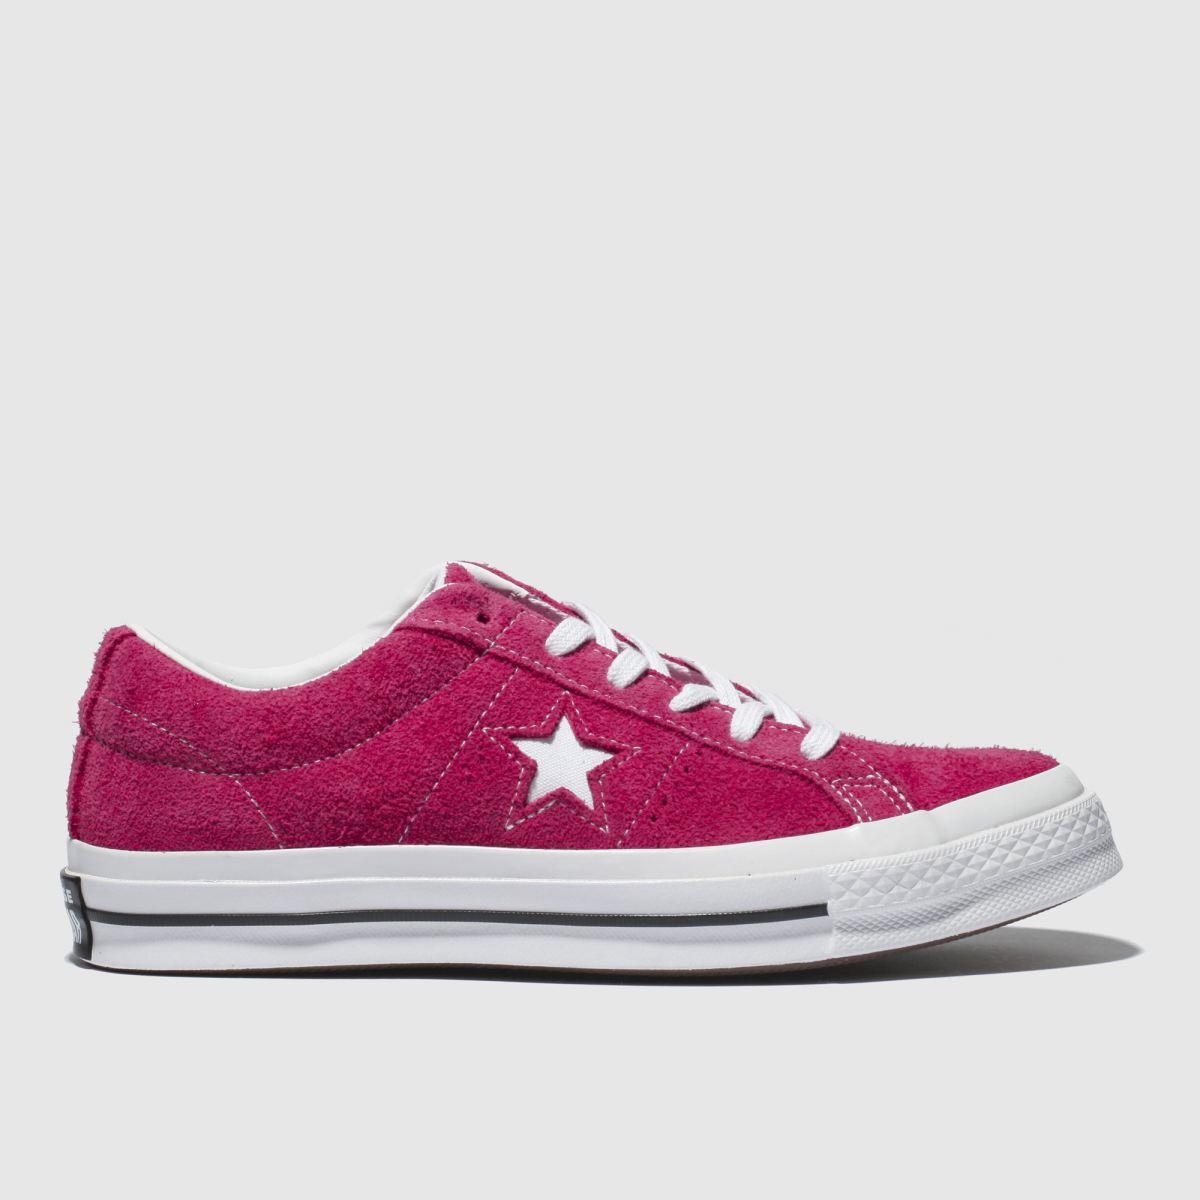 Converse Pink One Star Ox Suede Trainers - Schuh at Westquay - Shop Online 514980a98